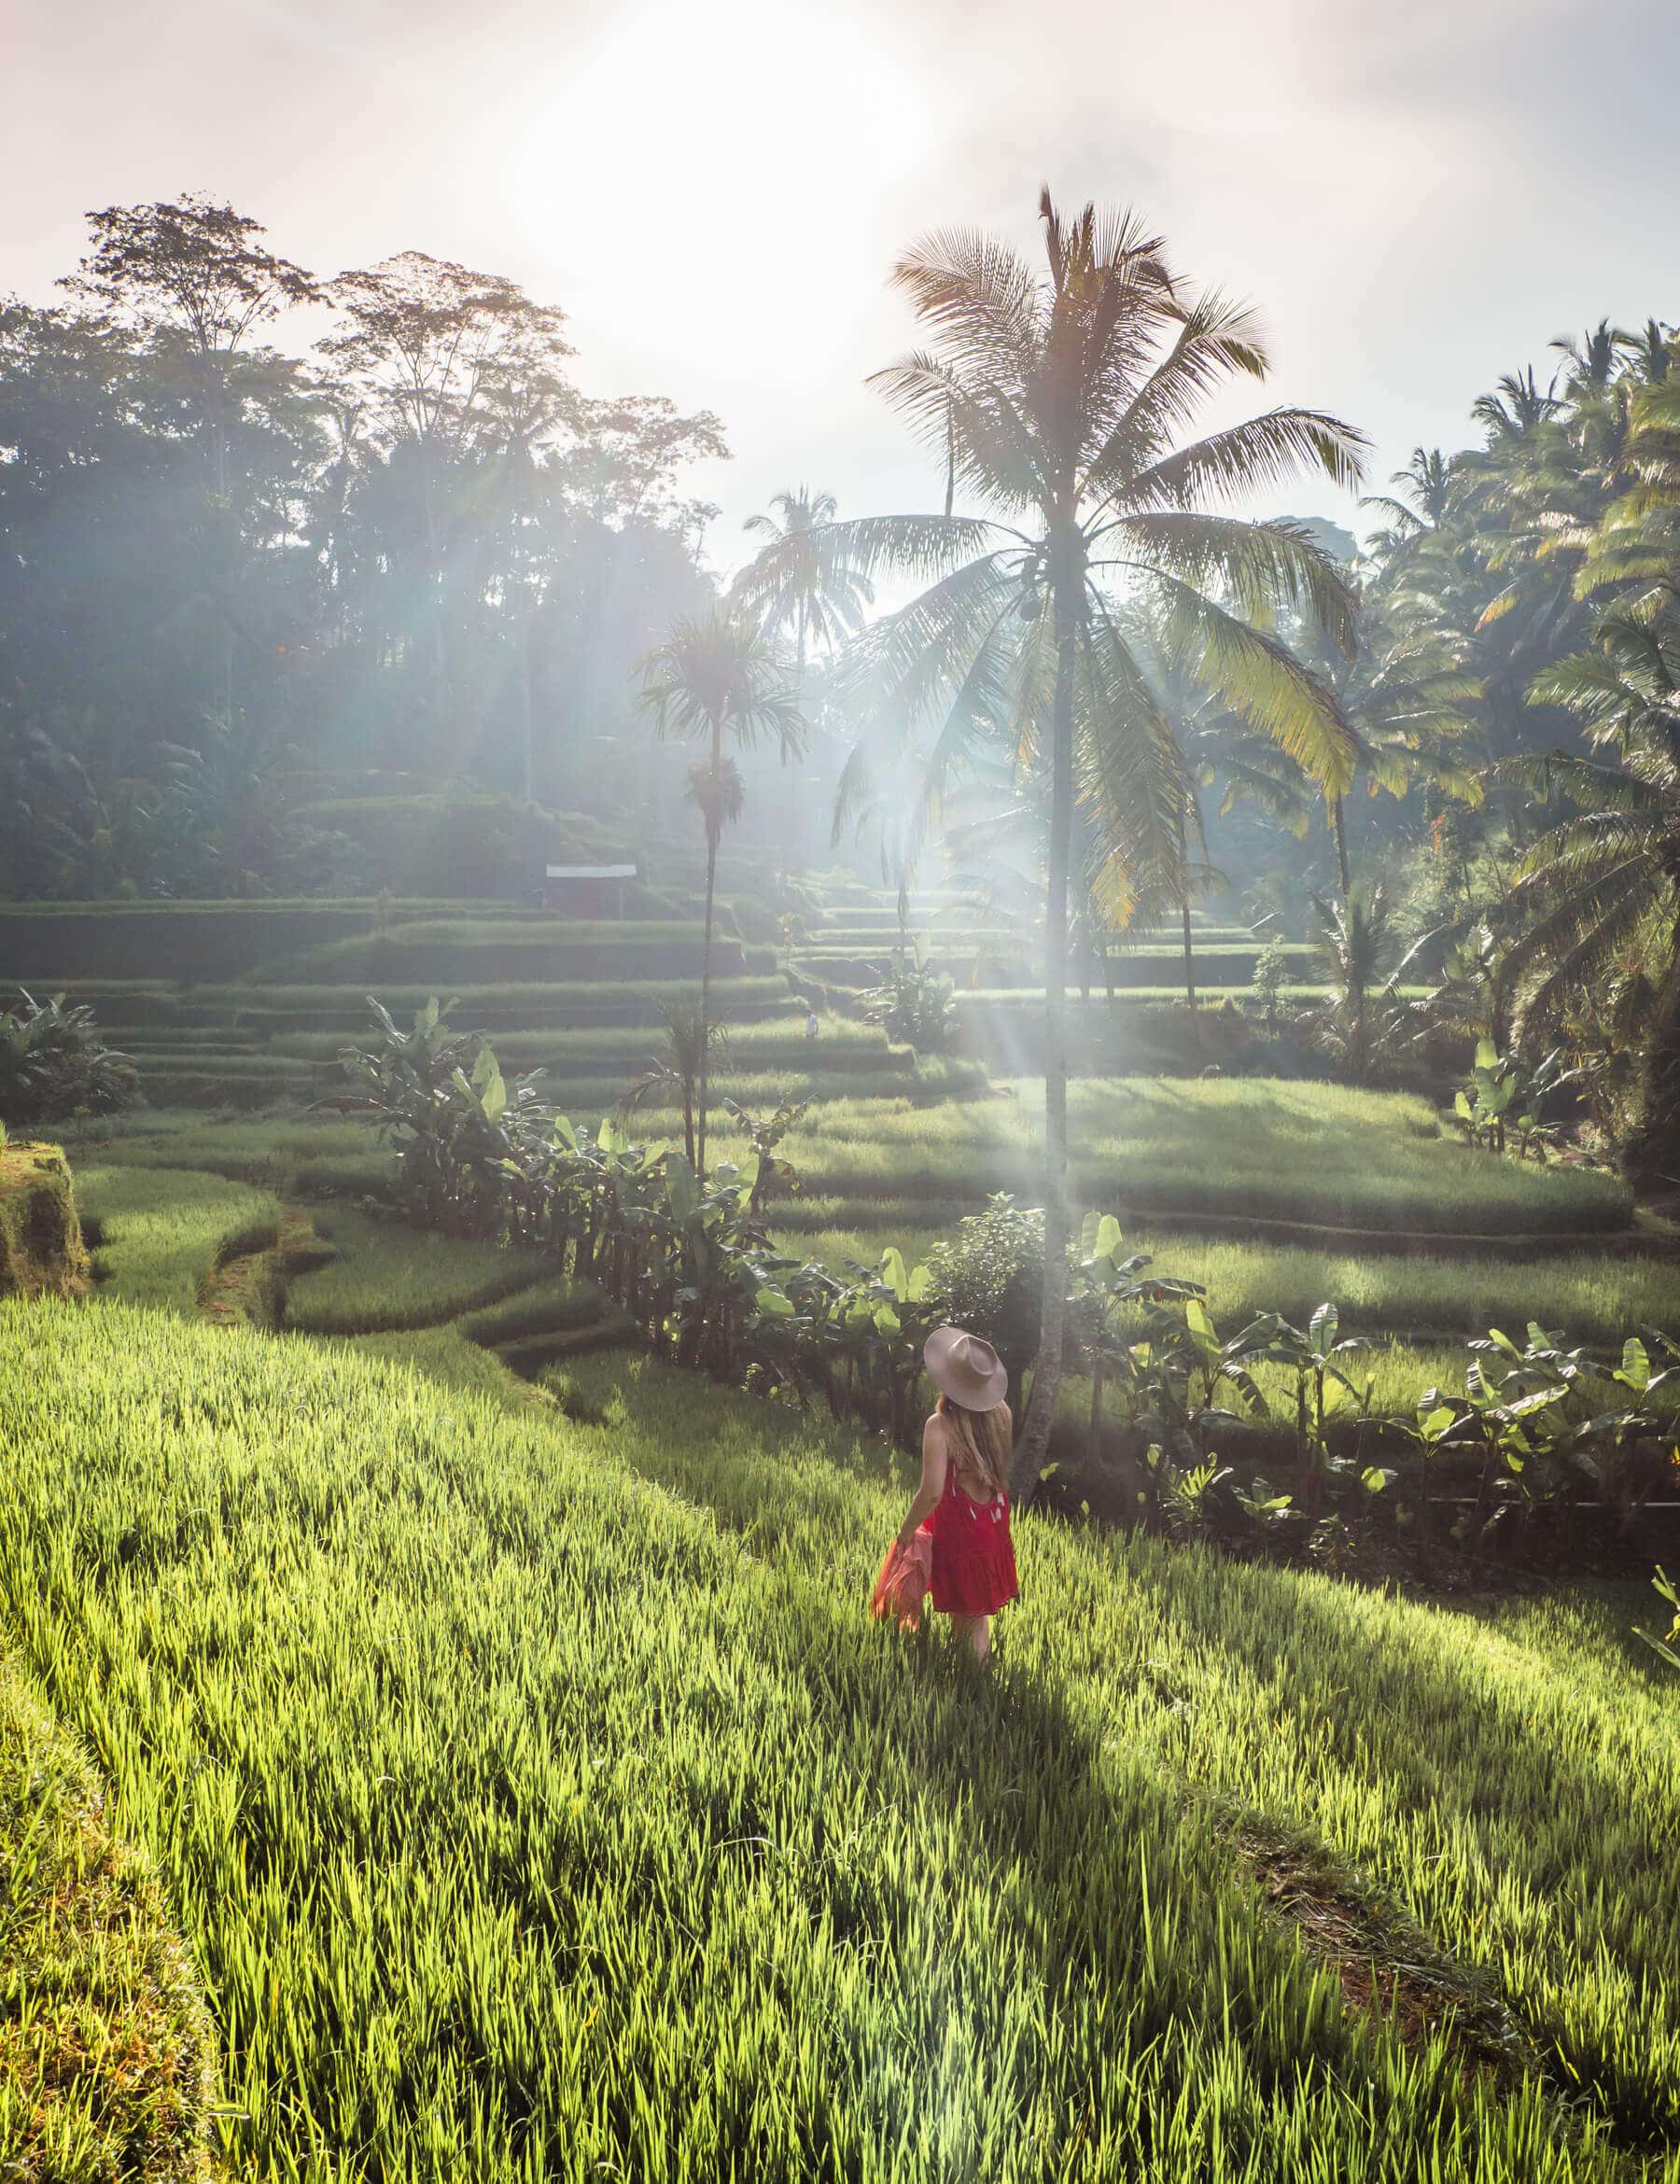 A girl walking through the rice fields in Tegalalang Rice Terrace Ubud at sunrise